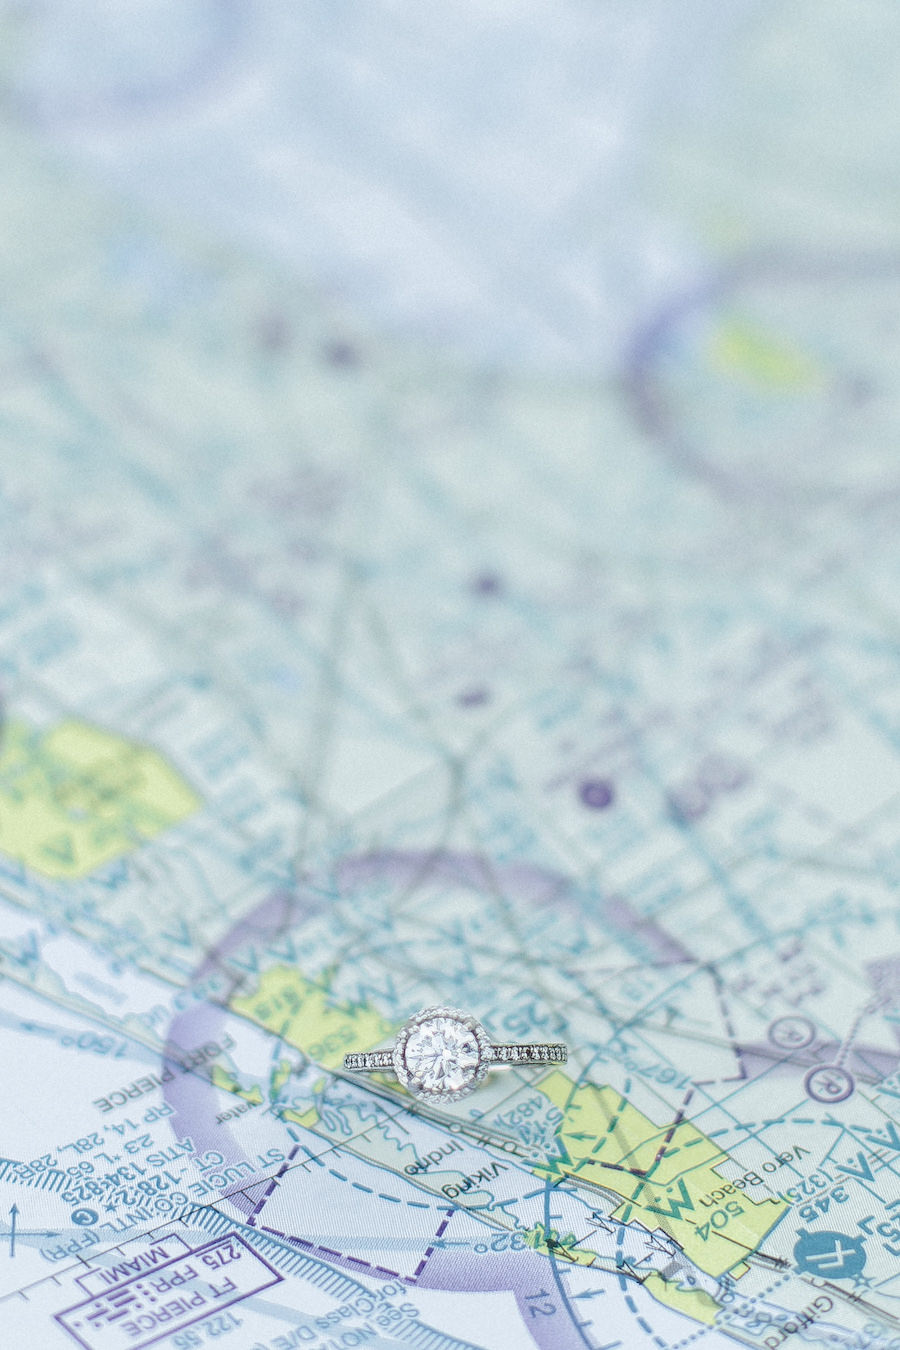 Travel Inspired Engagement Ring Portrait with Map   Lakeland Wedding and Engagement Photographer Ailyn La Torre Photography